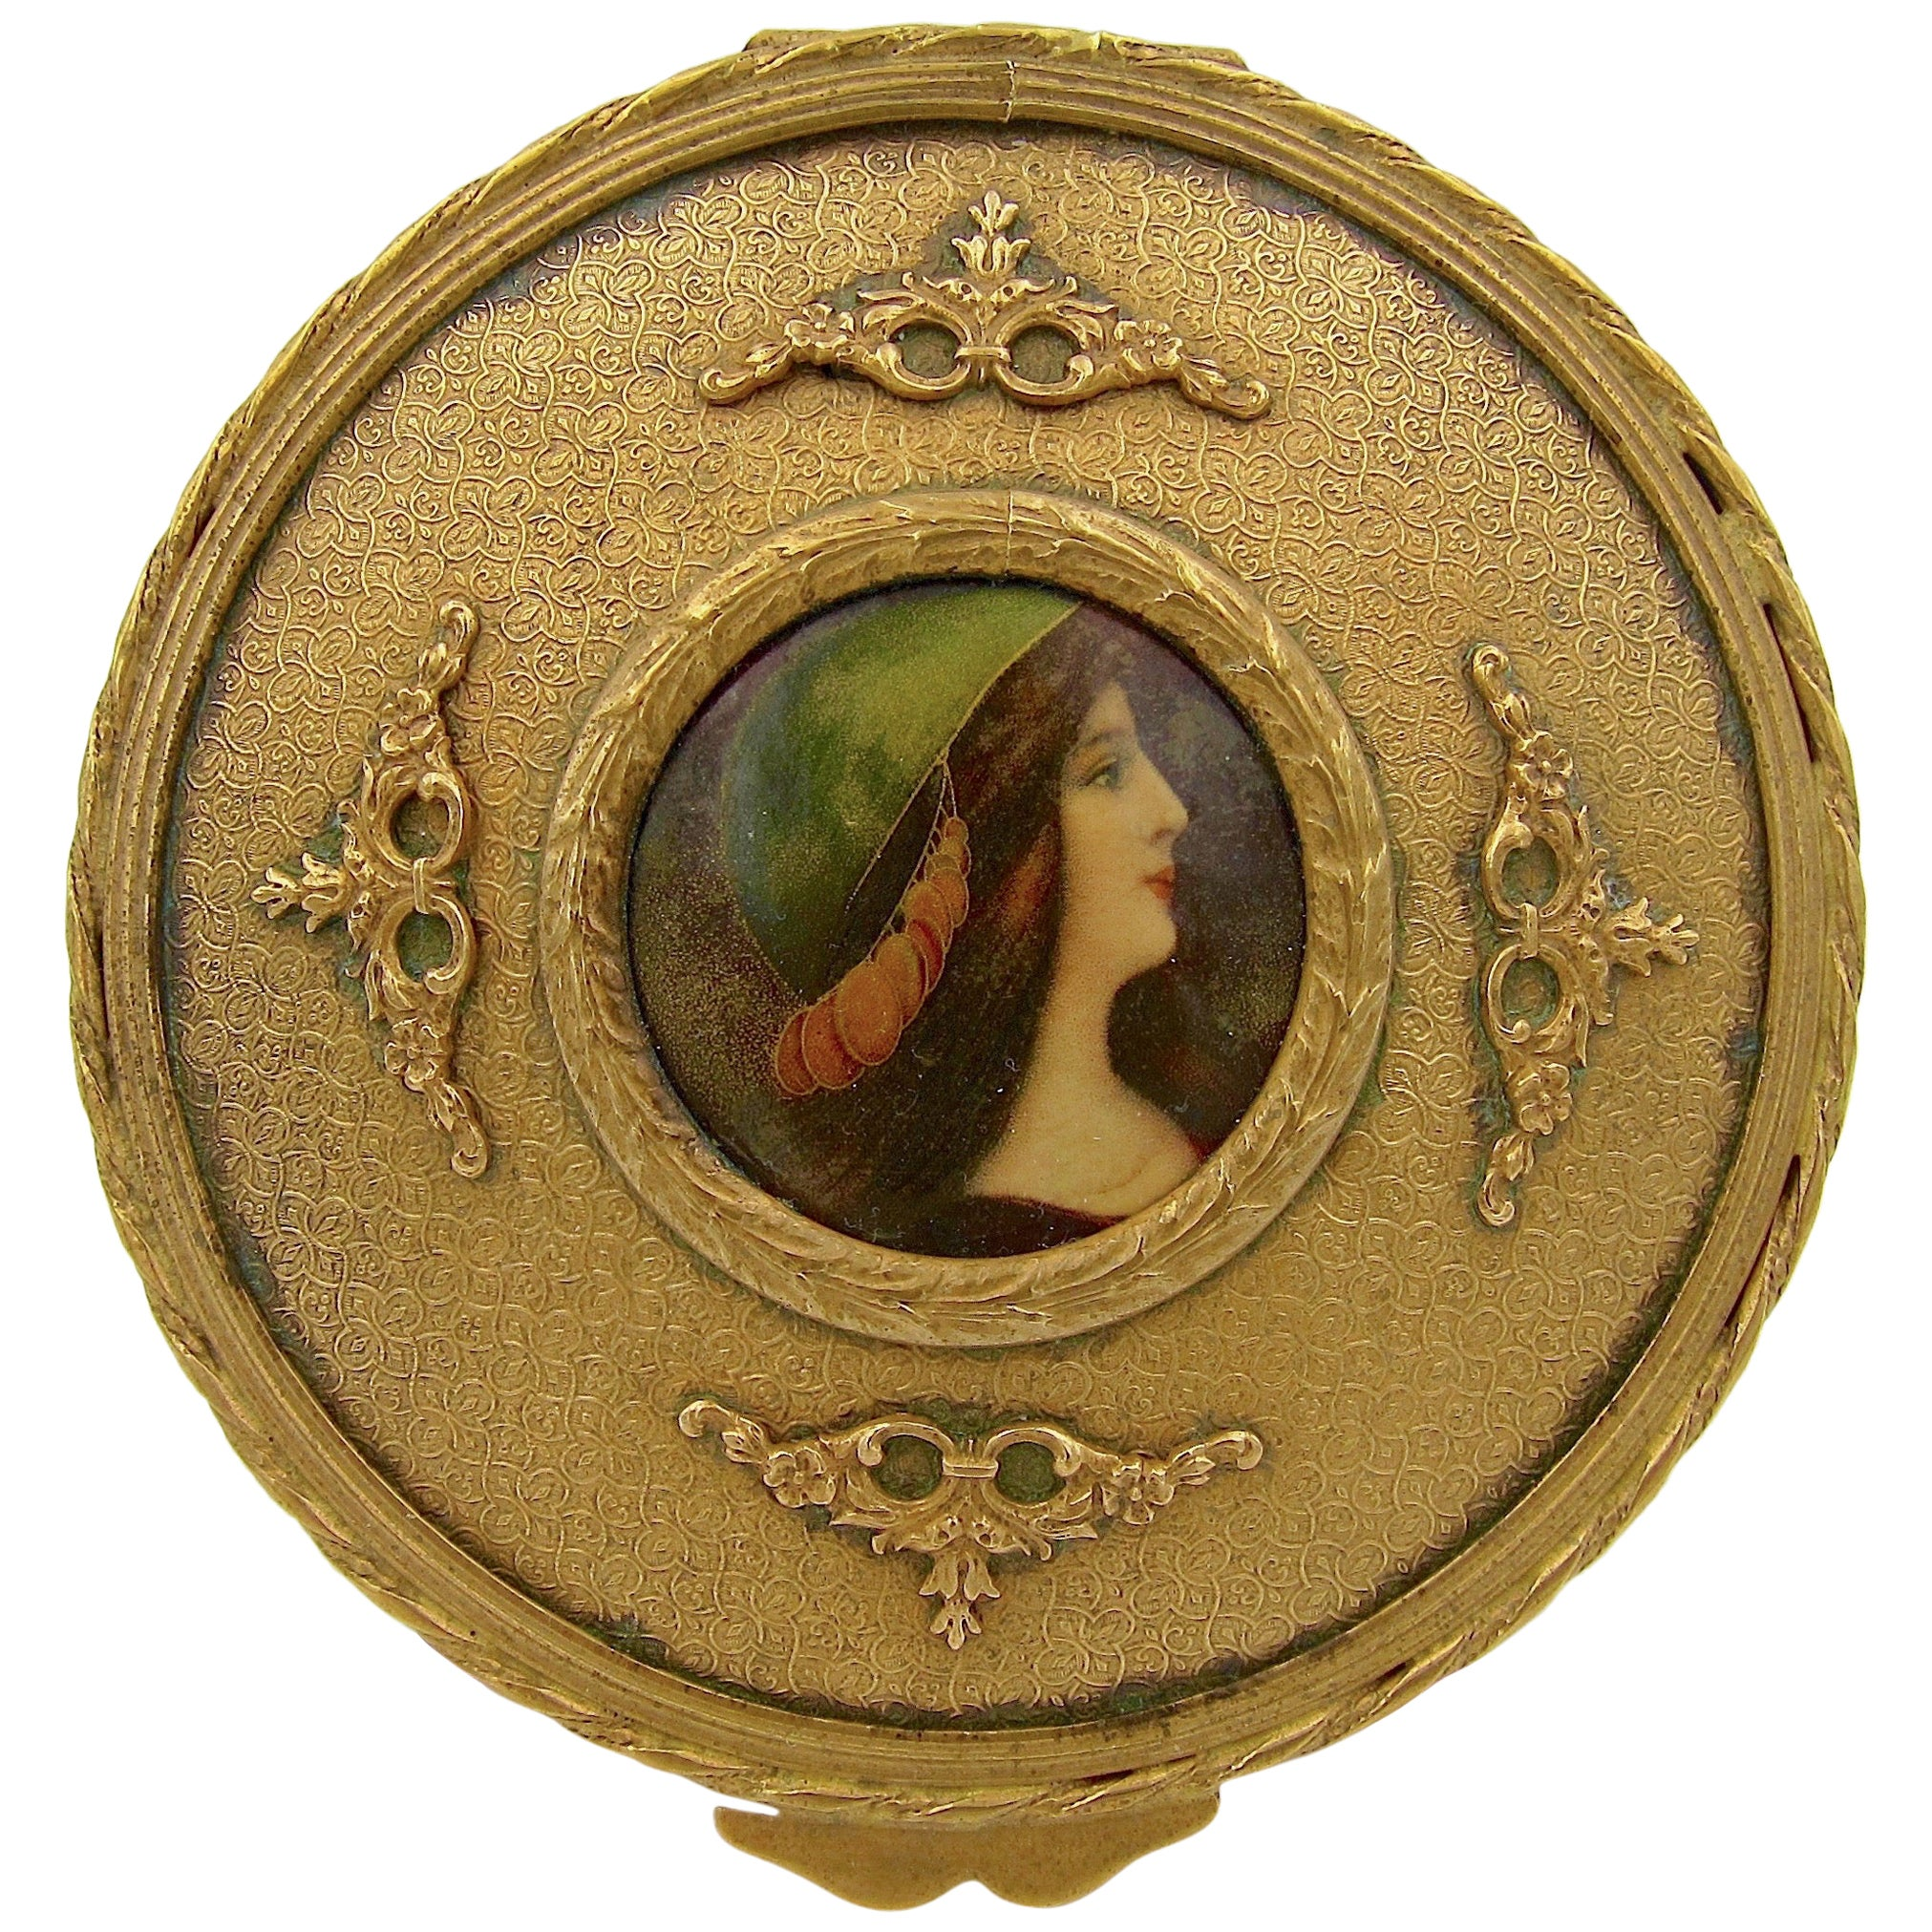 Antique French Gilt Bronze Vanity Box with a Hand Painted Enamel Portrait